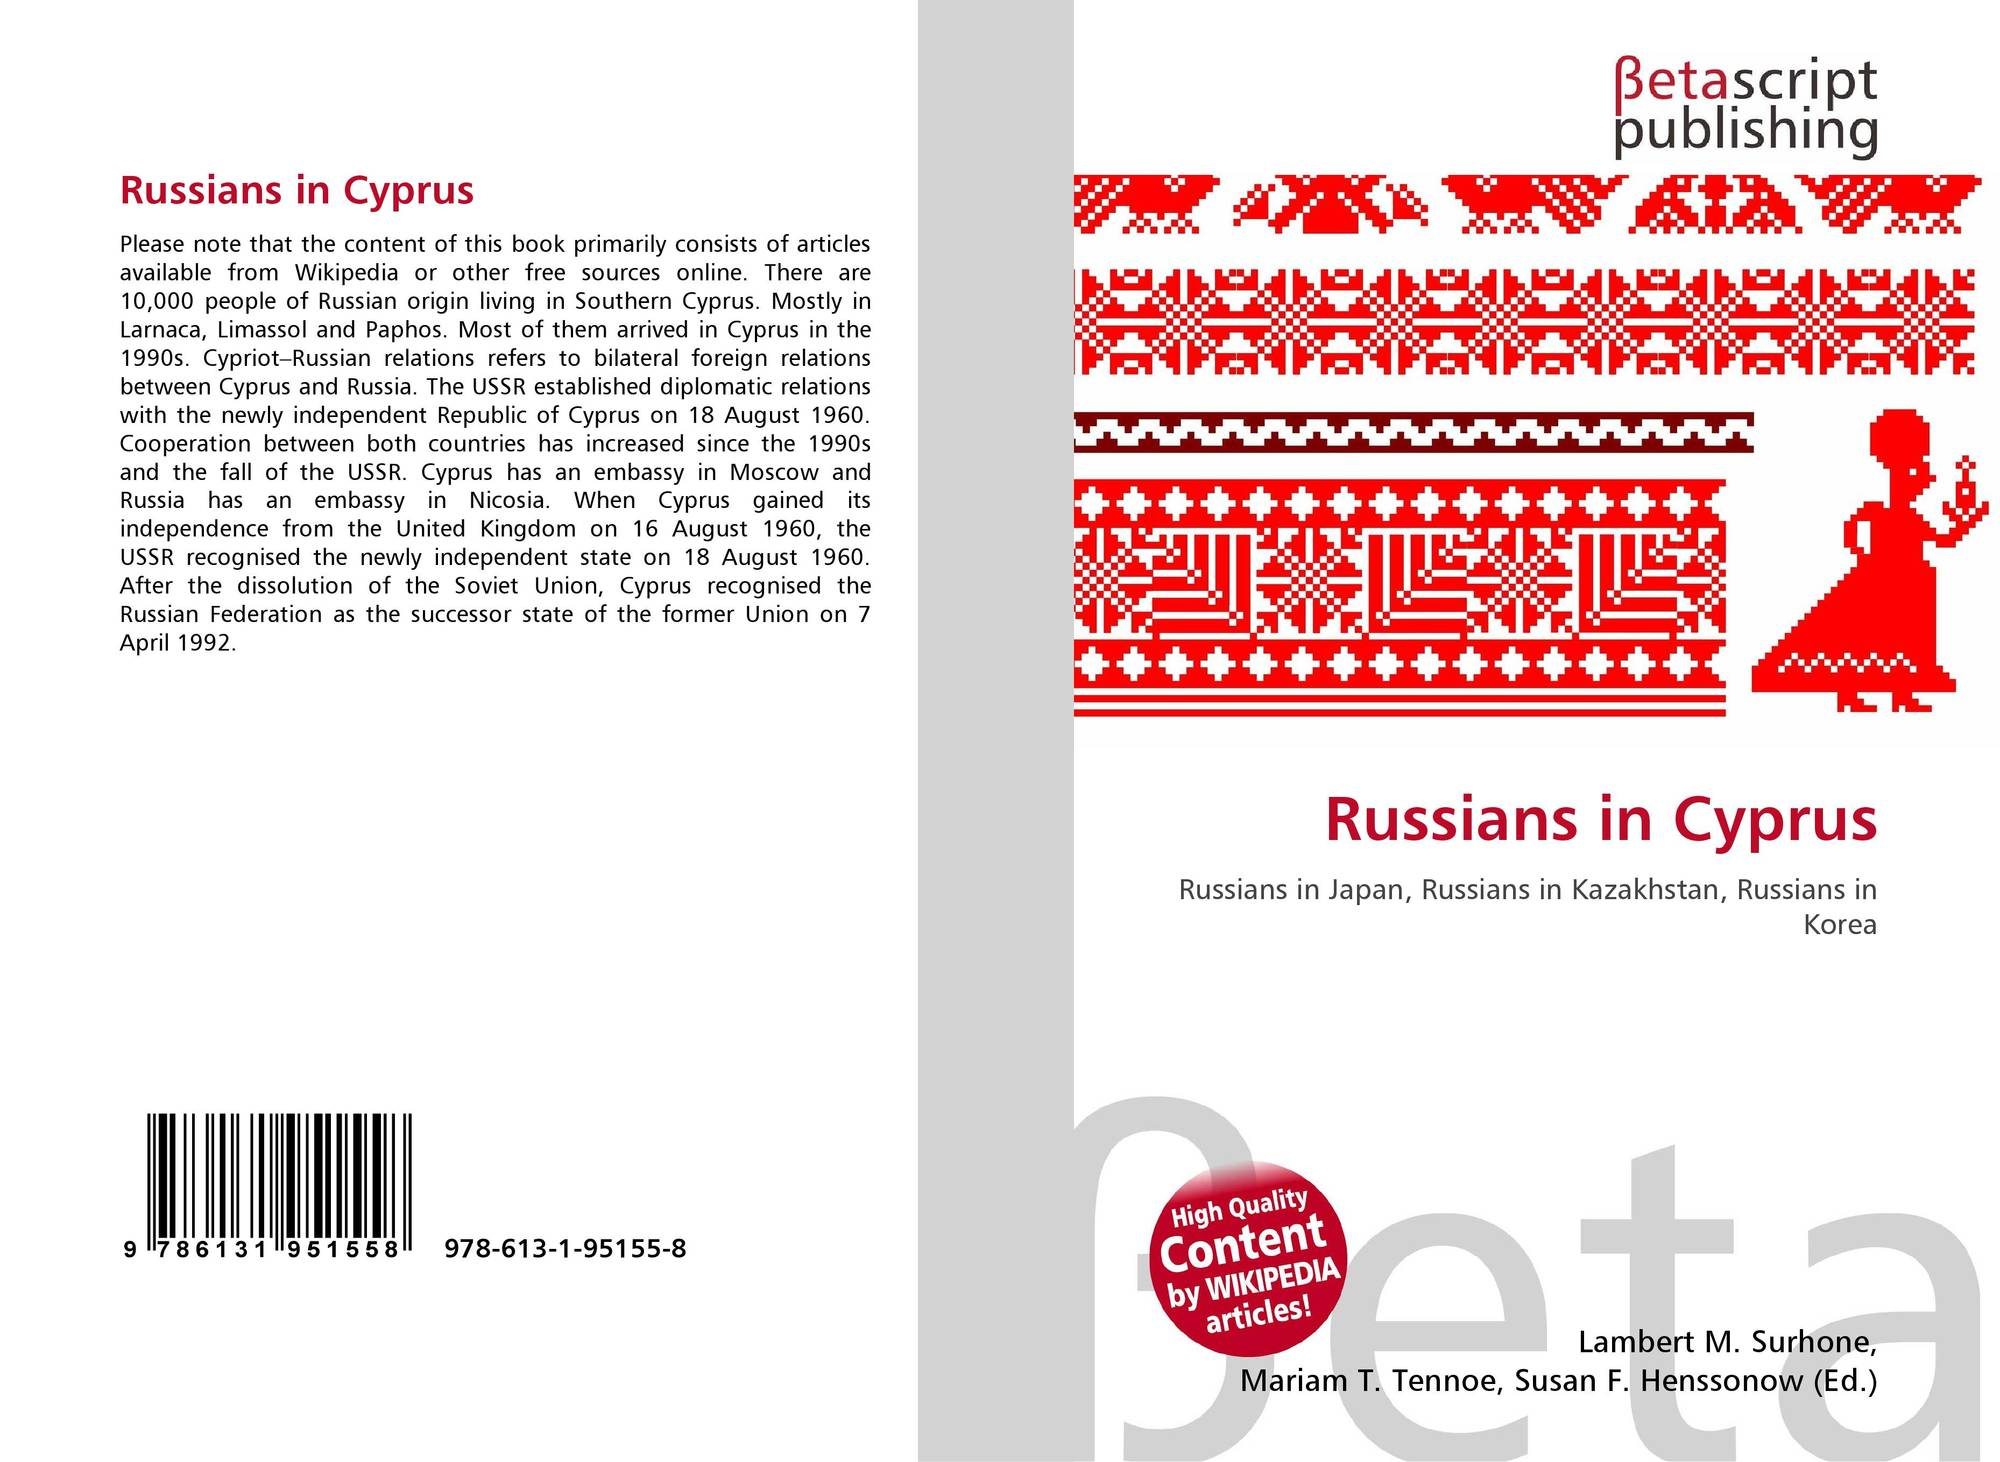 a creative personal diary about serfdom in russia